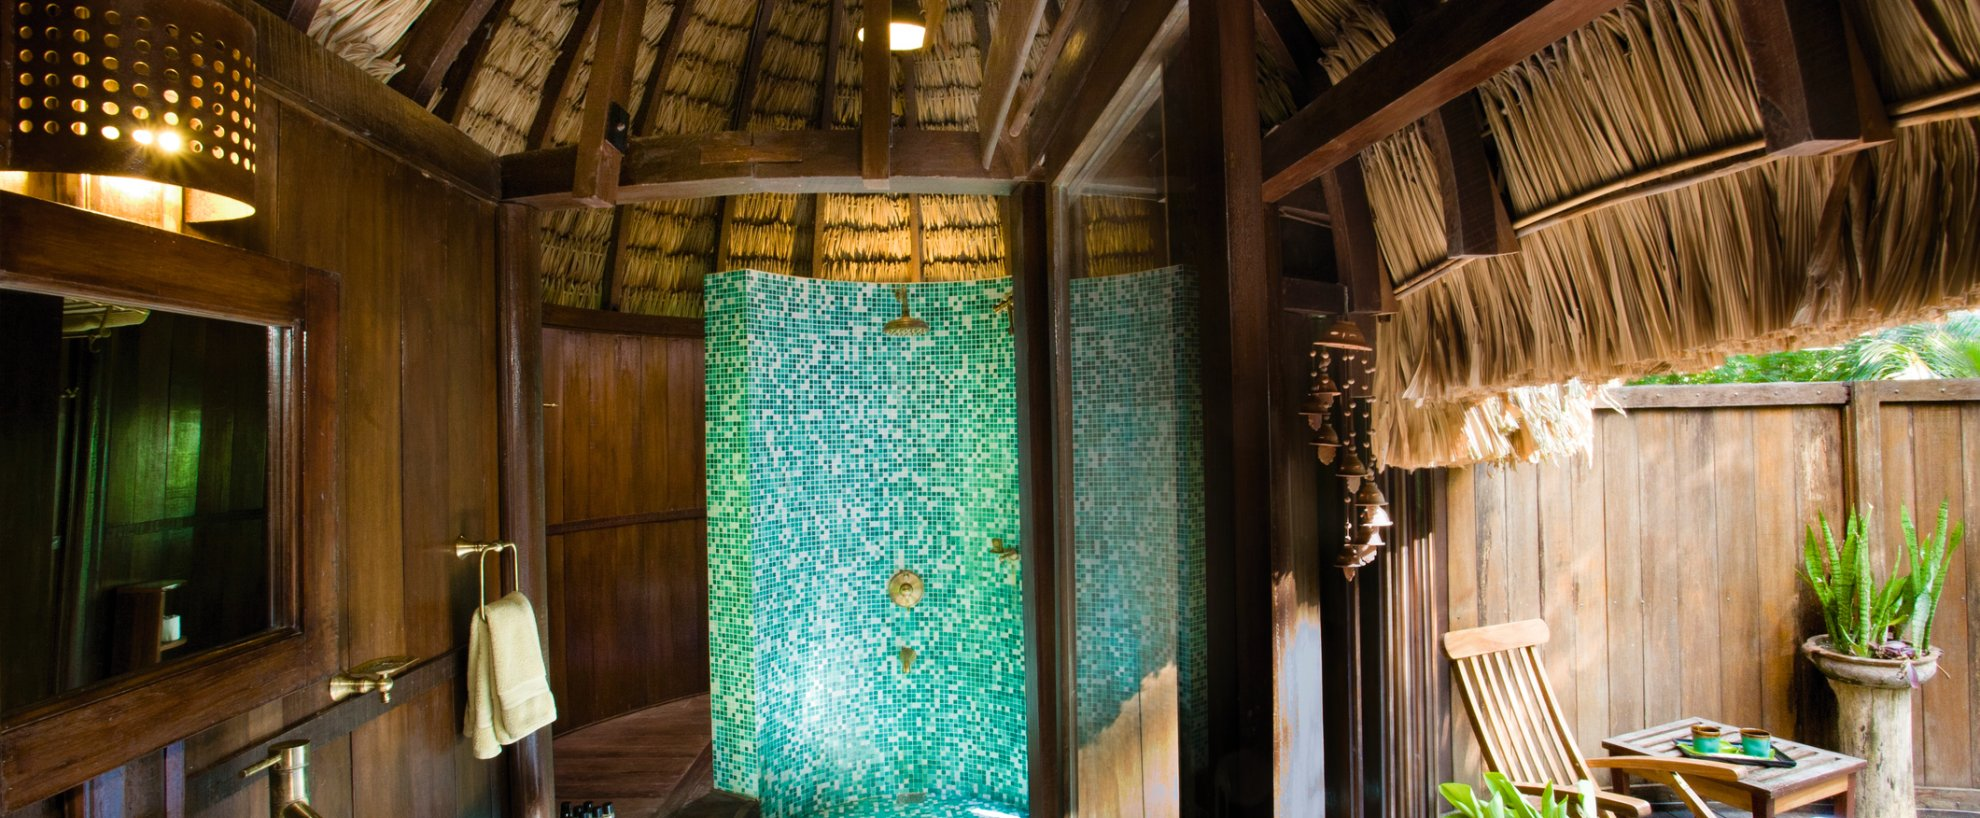 Ayurveda Kuren Indien Südindien Andamanen Andaman Nicobar Islands Island Havelock Barefoot at Havelock Zimmer Cottages Badezimmer